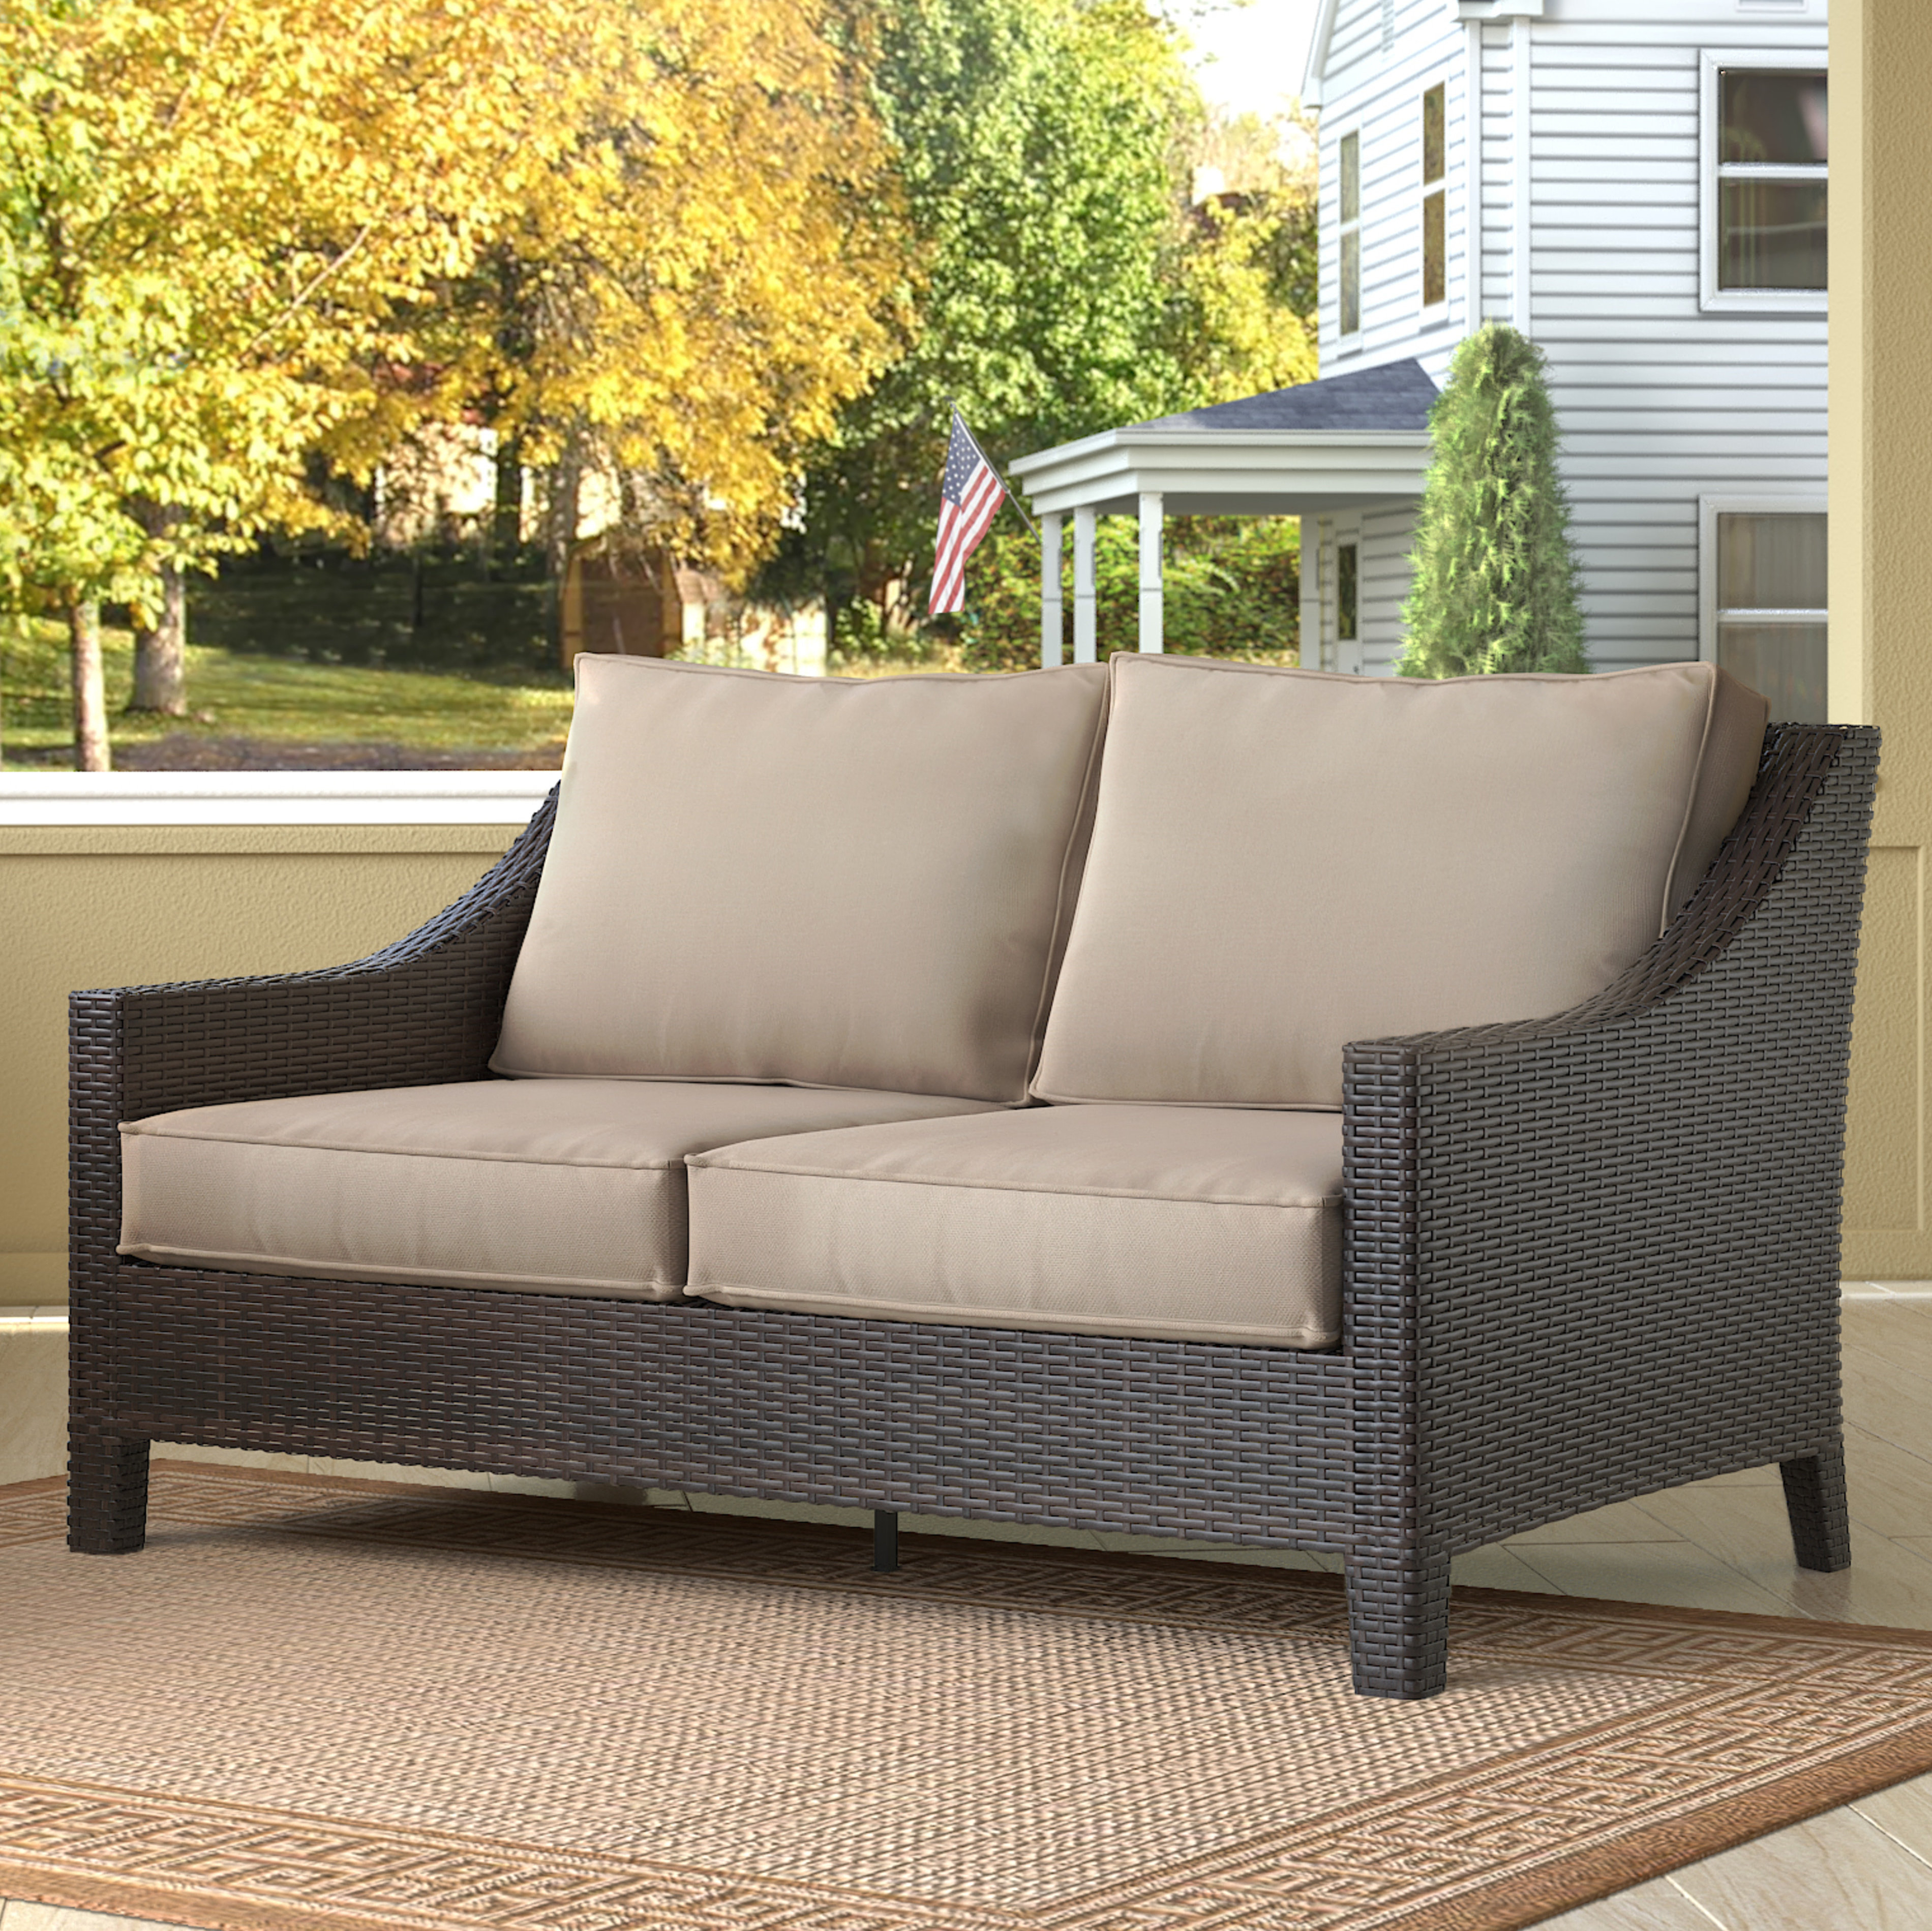 Tahoe Outdoor Wicker Loveseat With Cushions Regarding Best And Newest Loggins Loveseats With Cushions (View 14 of 20)